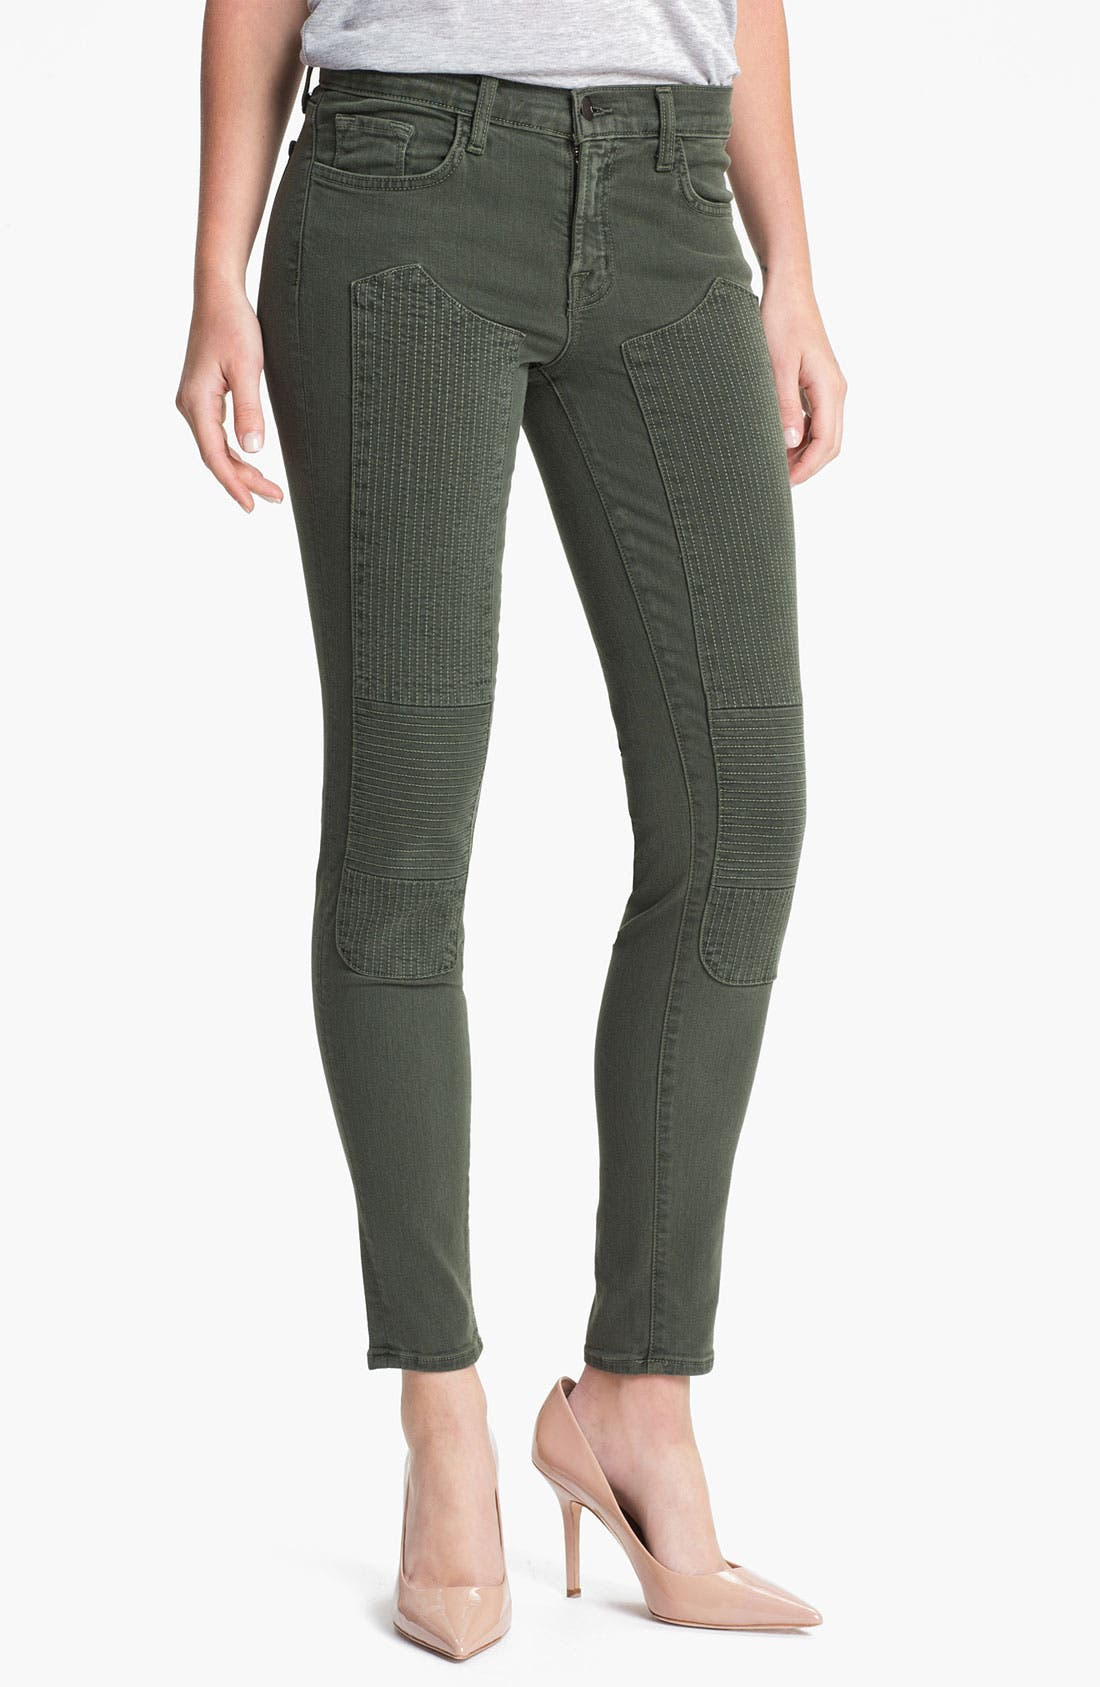 Alternate Image 1 Selected - J Brand Quilted Panel Skinny Moto Jeans (Vin Mantis)